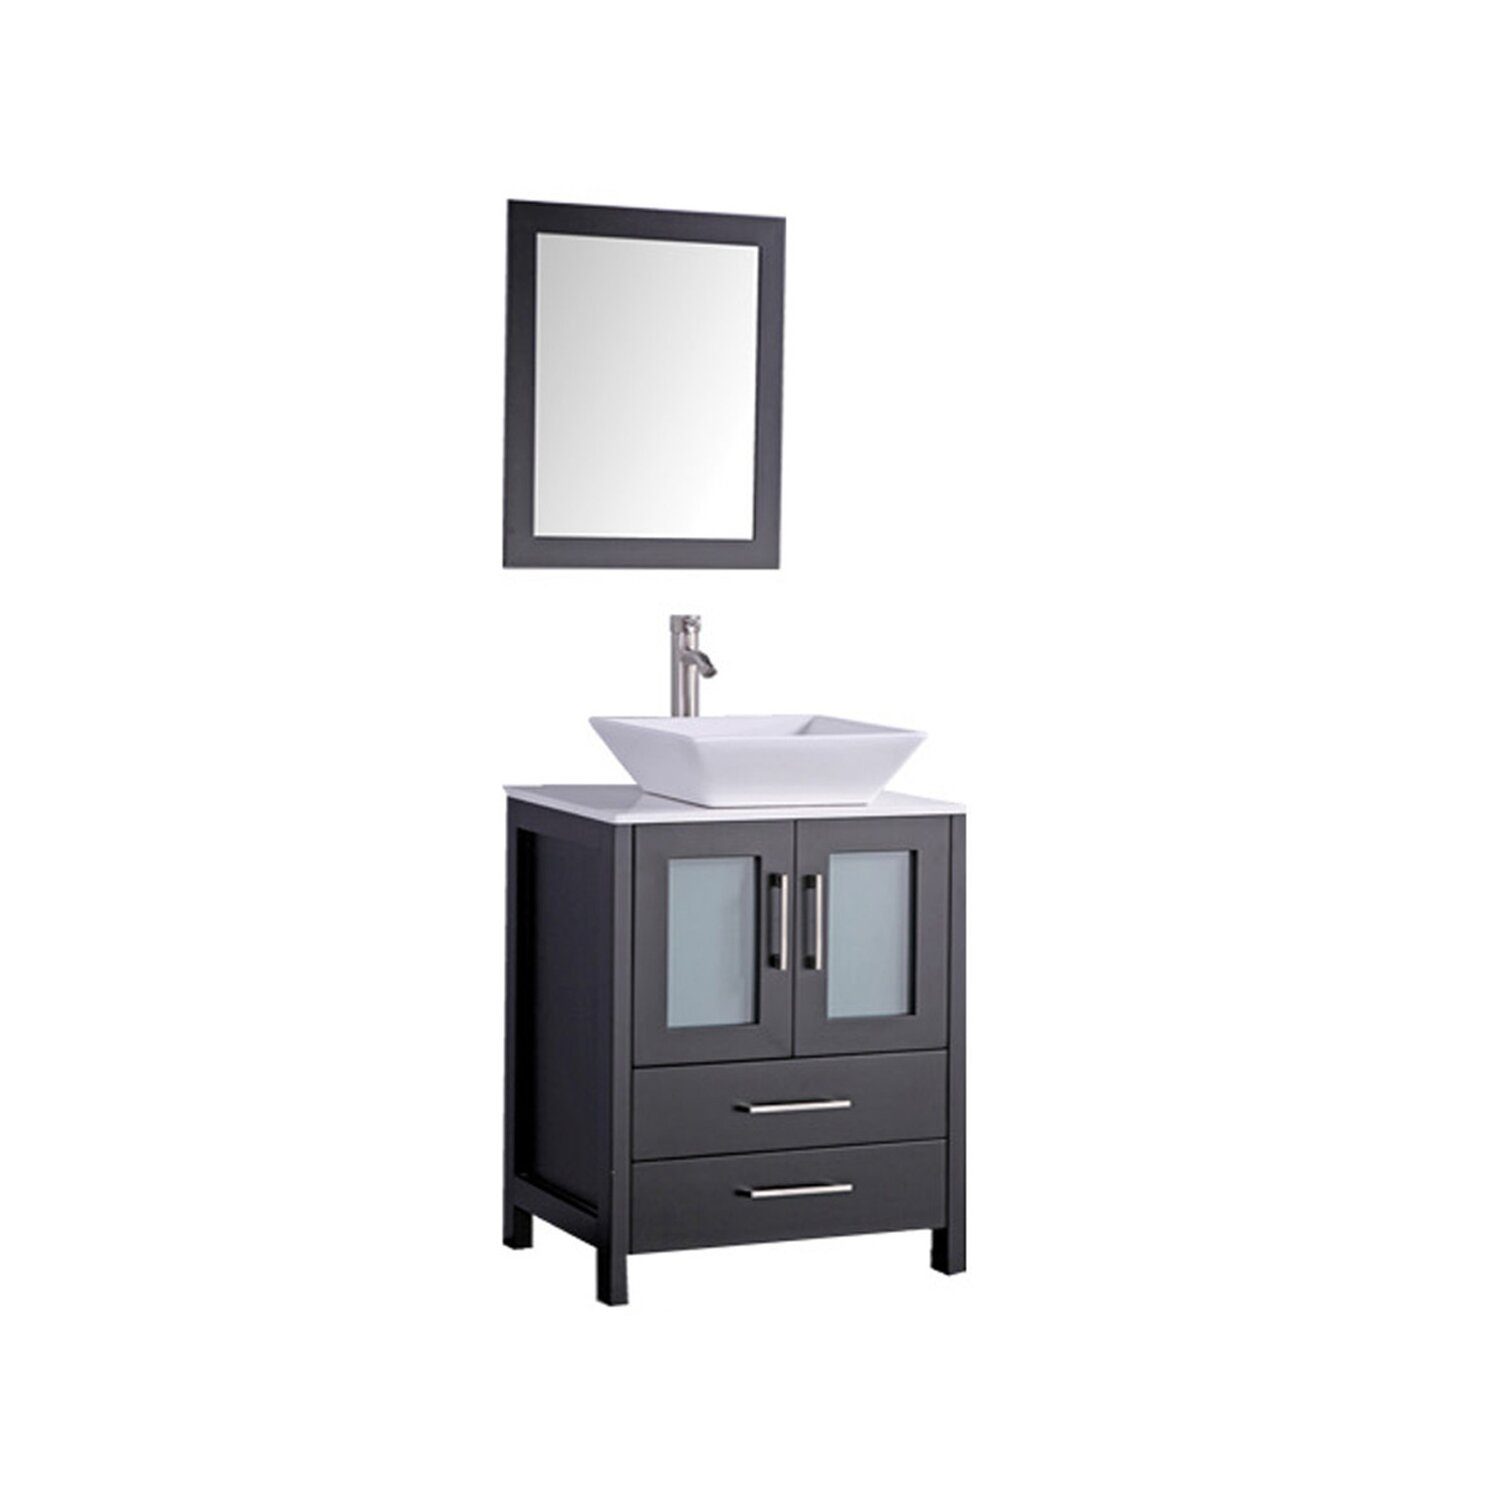 mtd vanities jordan 30 single sink bathroom vanity set with mirror